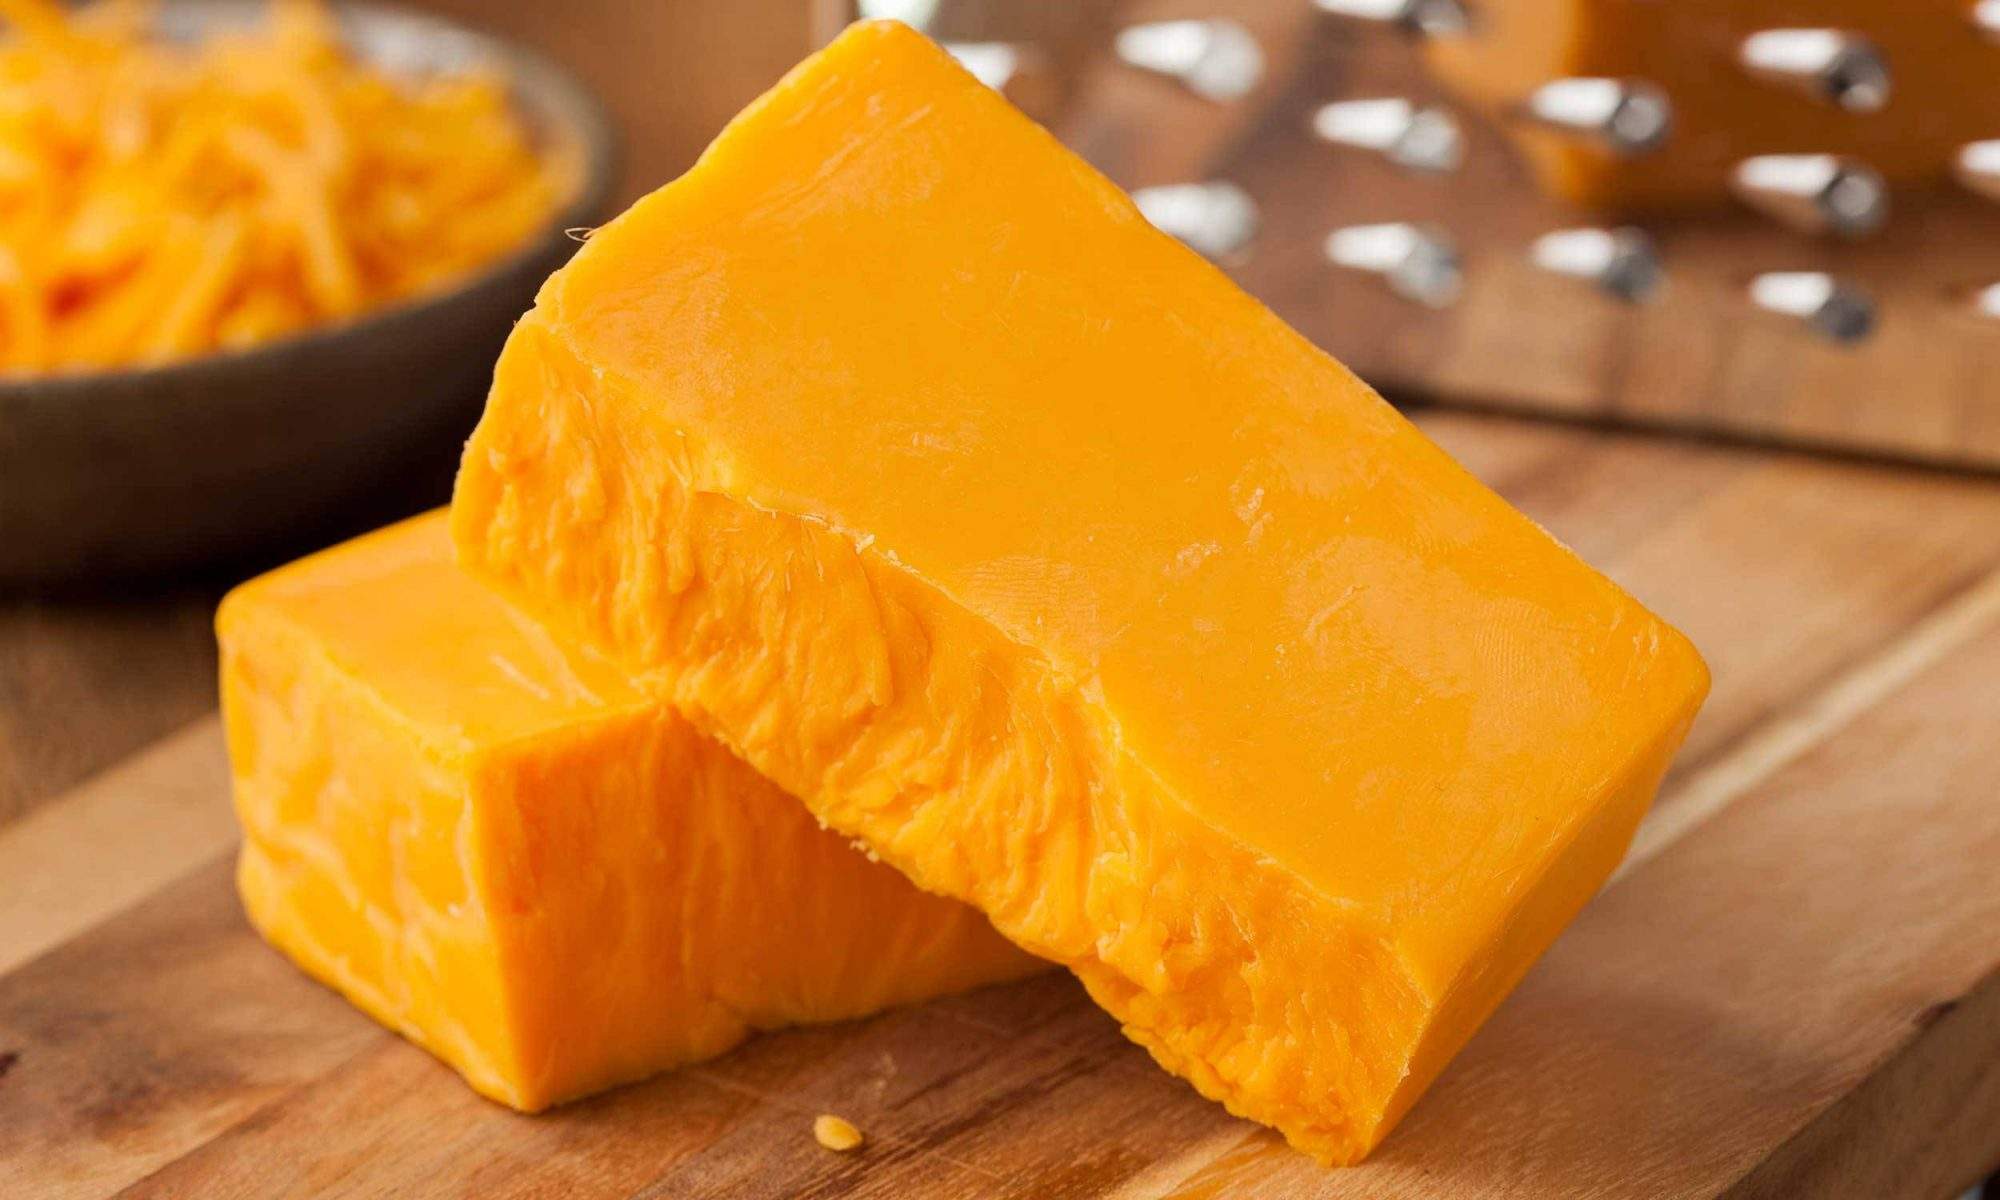 EC: How to Store Hard Cheeses So They Don't Get Moldy